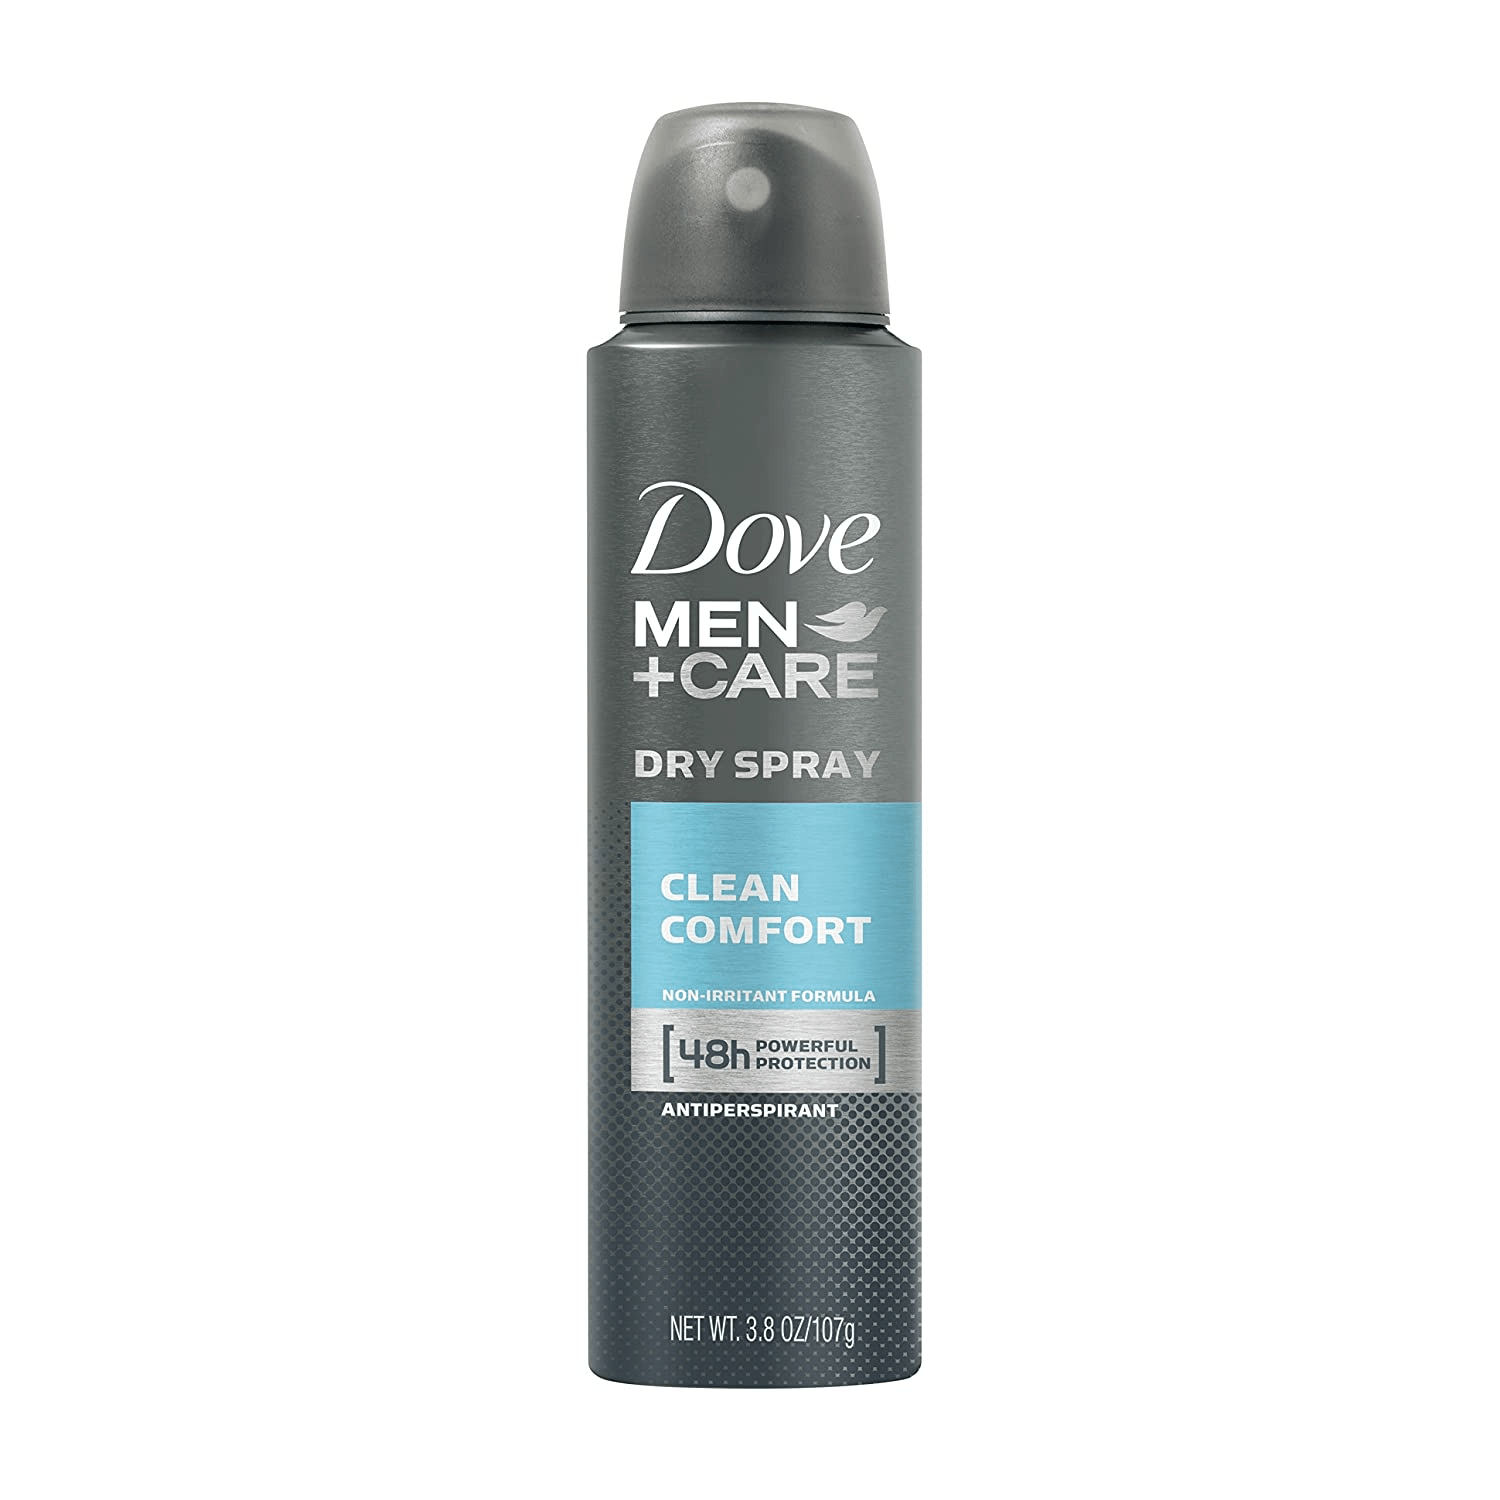 top deodorant sprays for men that actually work smell good 1